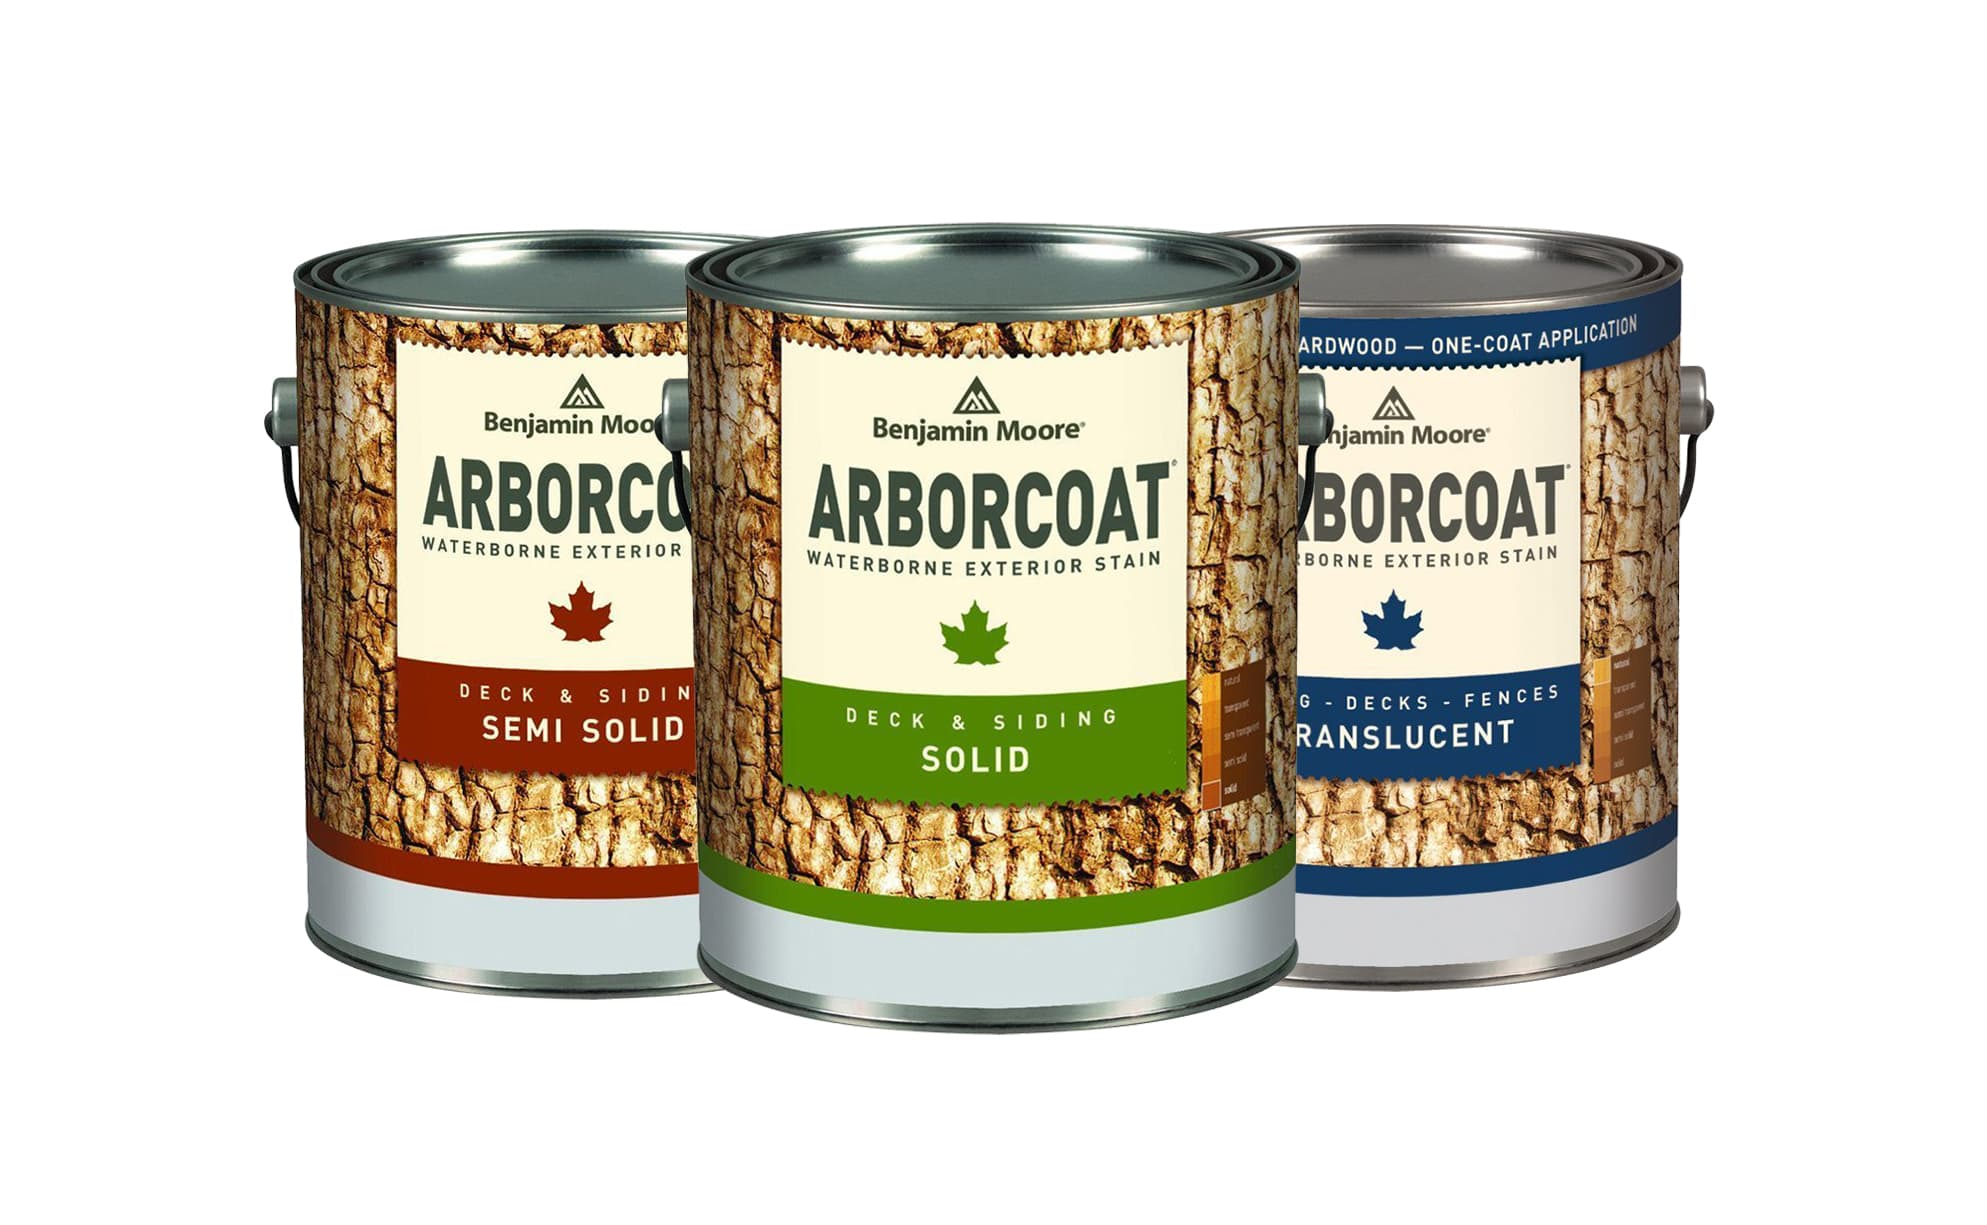 Benjamin Moore Arborcoat Exterior Stain gallons, available at John Boyle Decorating Centers in Connecticut.